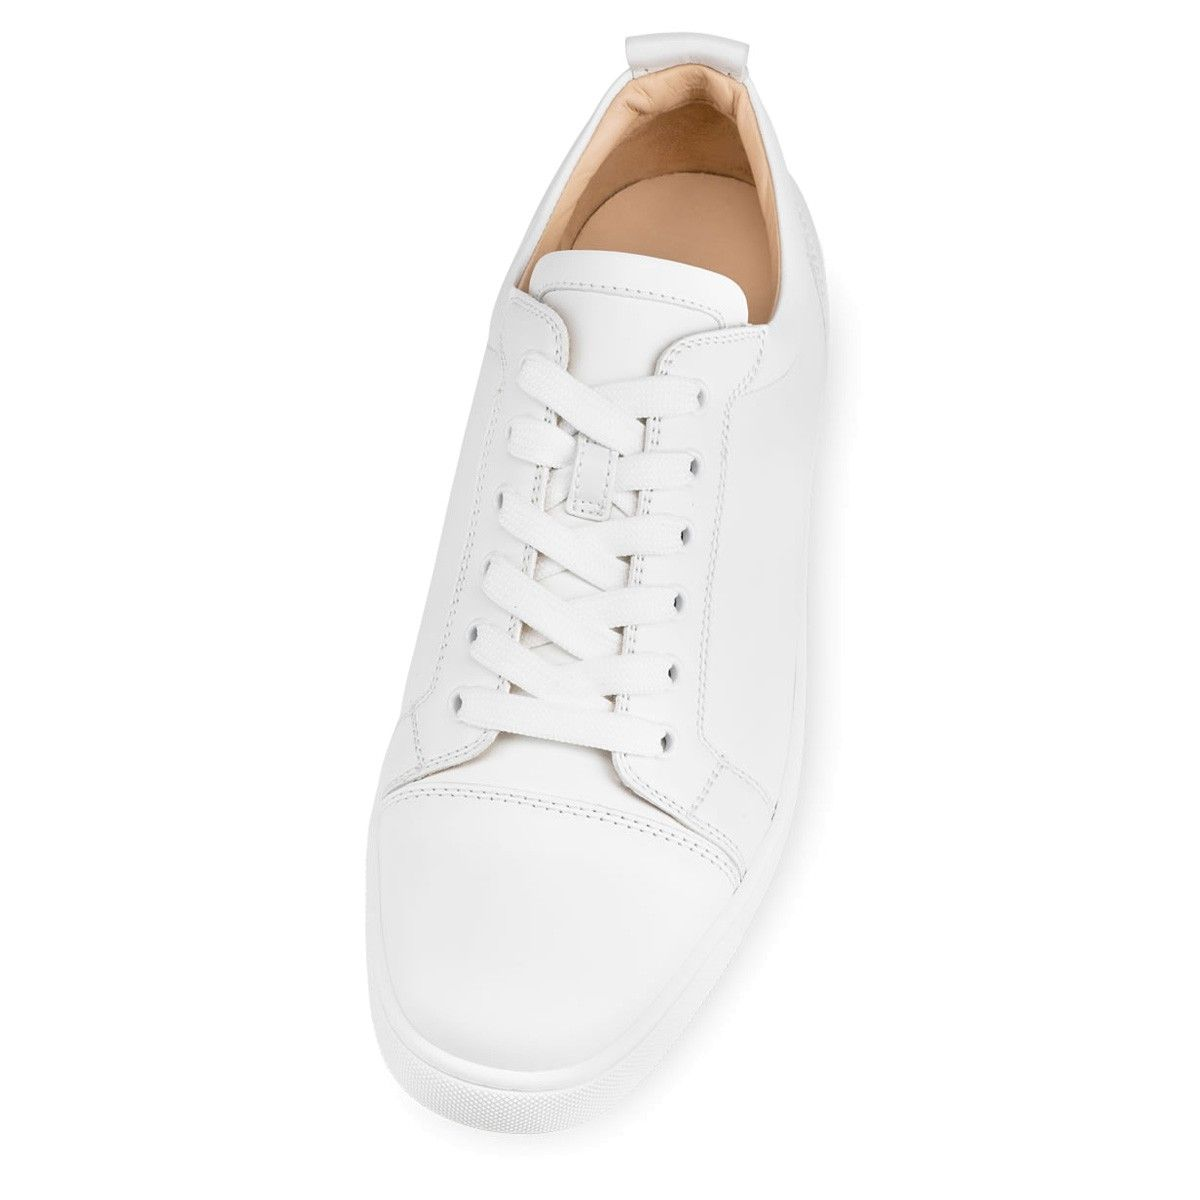 Louis Junior Men's Flat White Leather - Men Shoes - Christian Louboutin